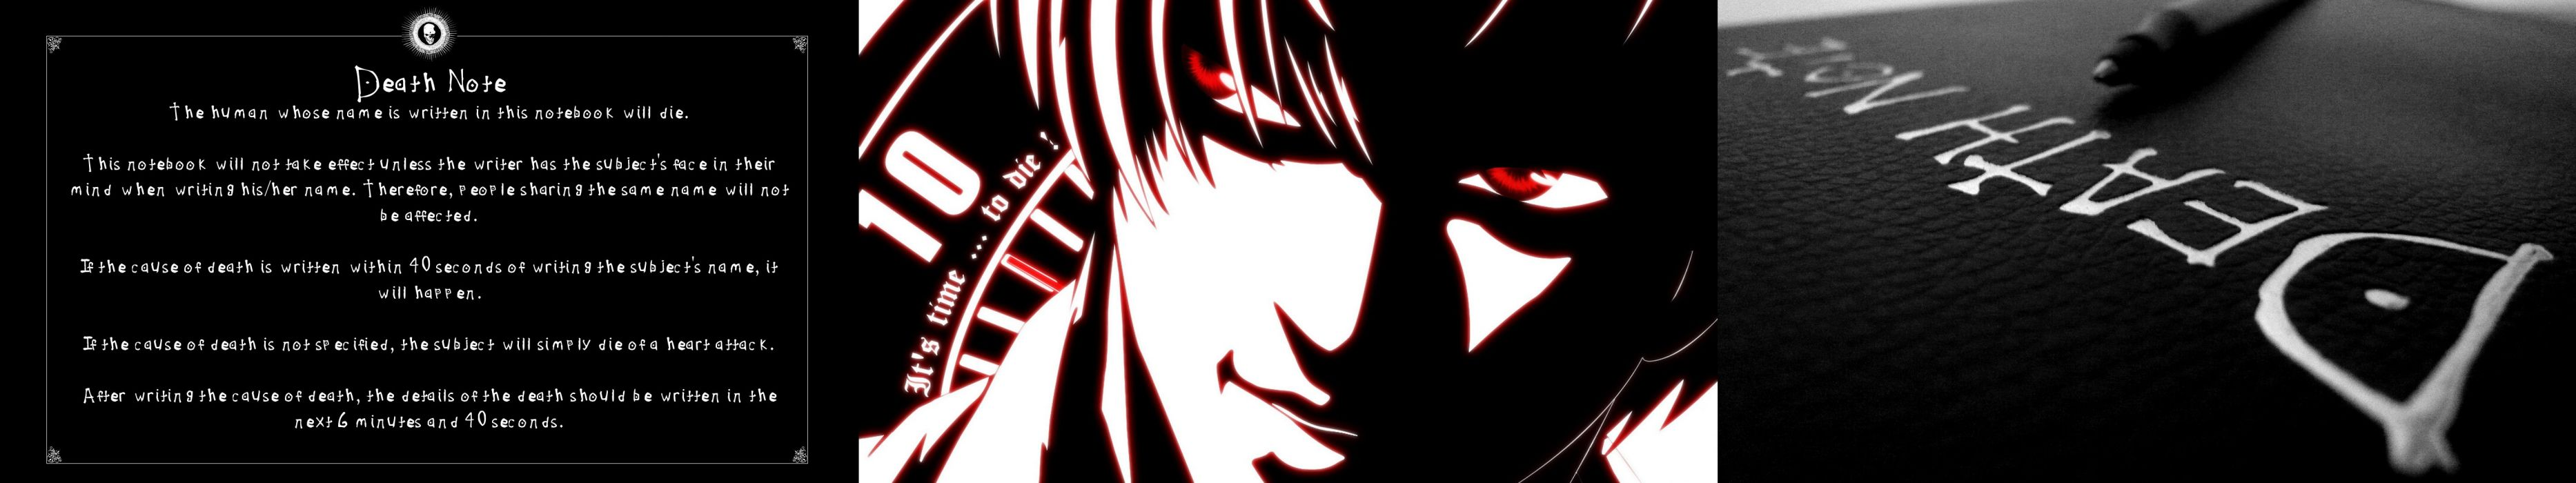 Triple Monitor Multiple Screen Multi Anime Death Note Wallpaper 5760x1080 533999 Wallpaperup